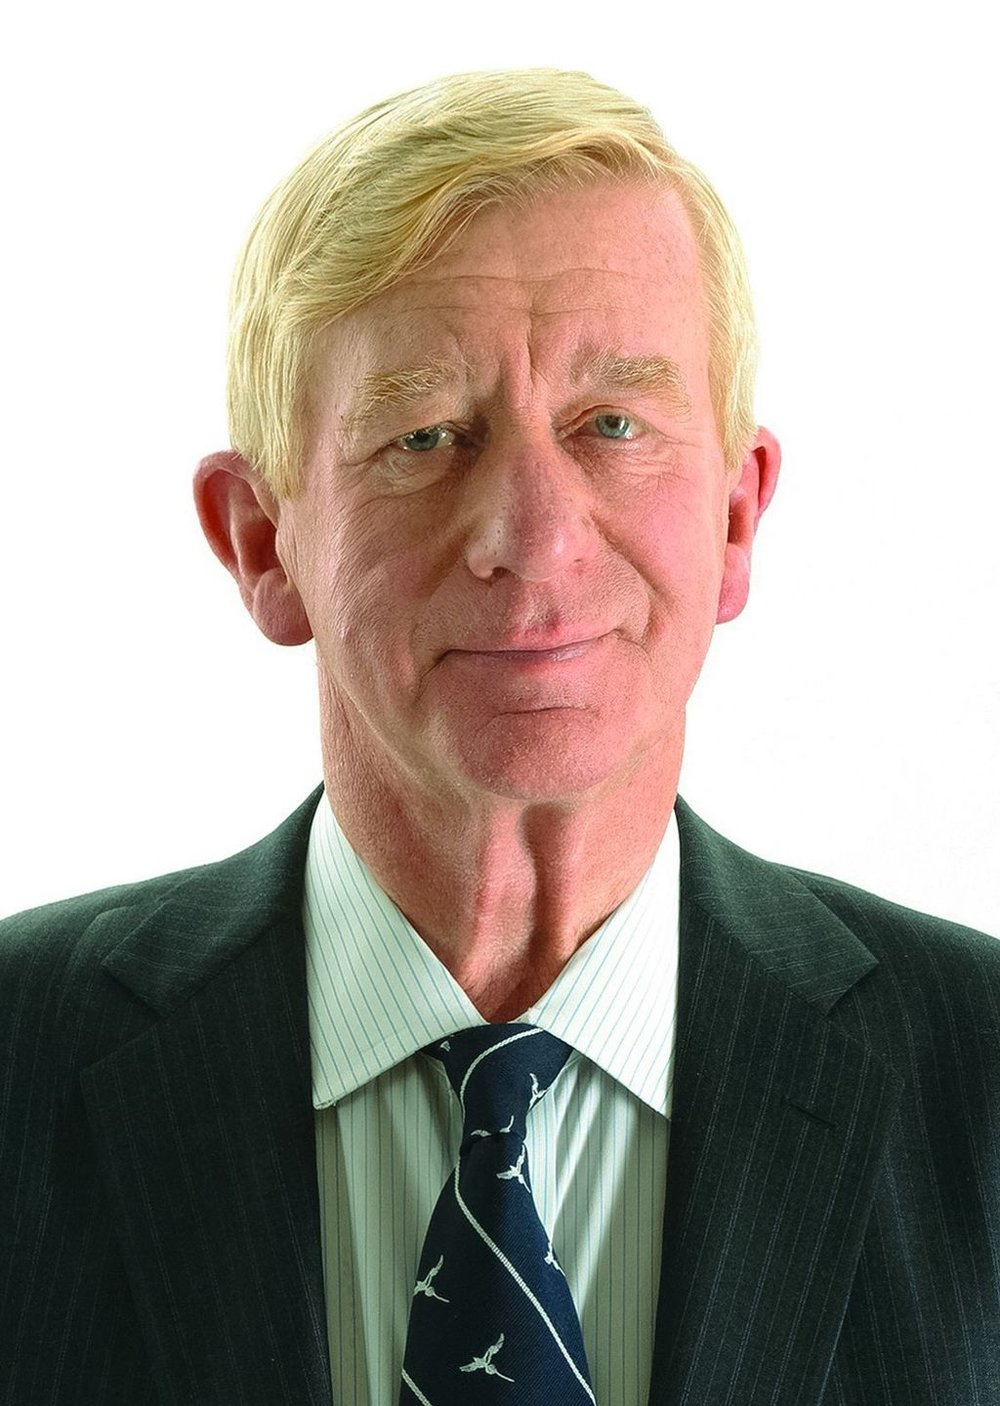 ( Wikipedia ) Bill Weld campaign portrait